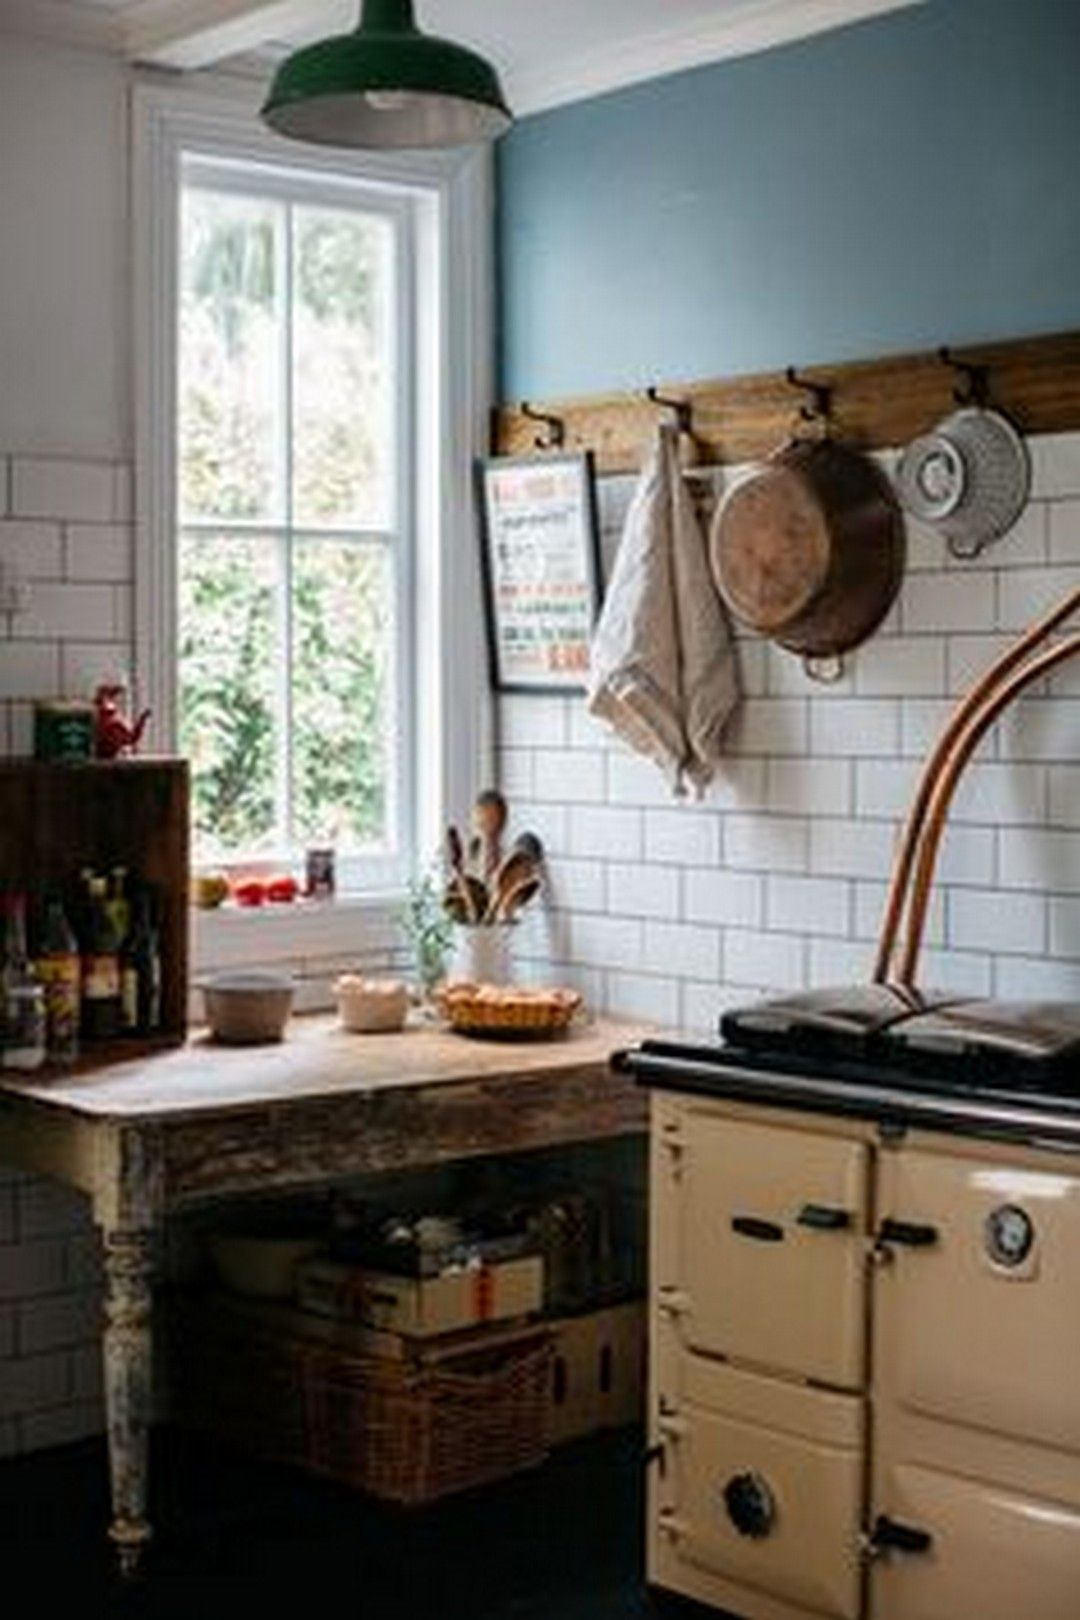 How to Easily Set a Rustic Farmhouse Style Kitchen in Your House - GoodNewsArchitecture #rusticfarmhouse